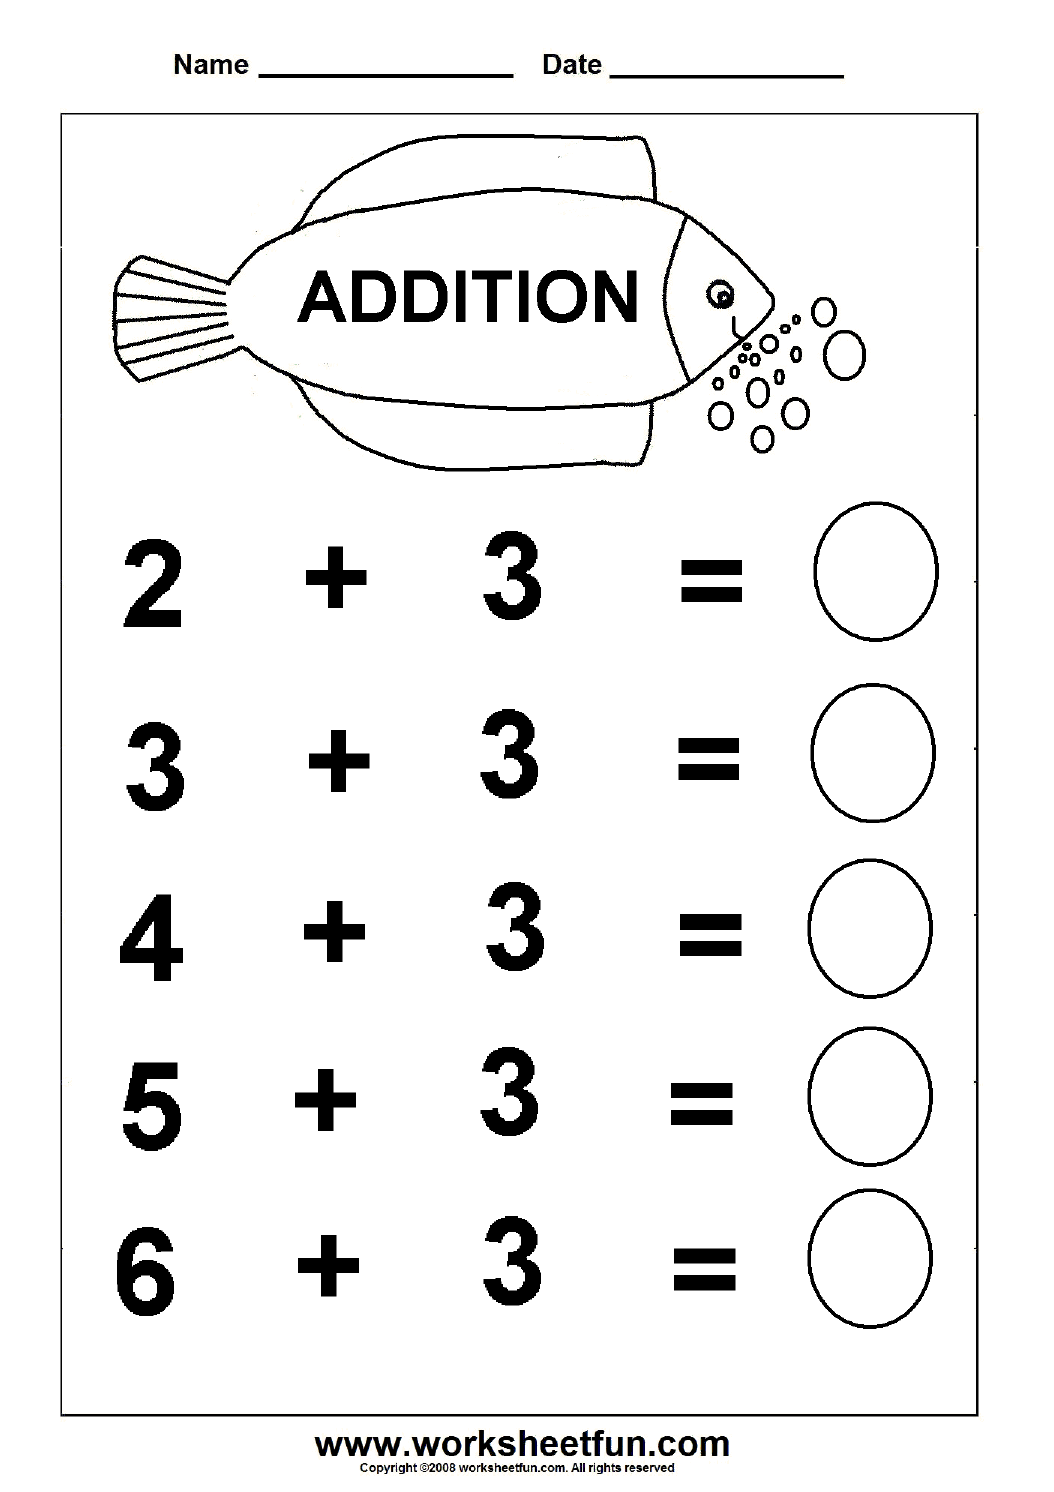 Addition Basic Addition Facts FREE Printable Worksheets – Addition Kindergarten Worksheet